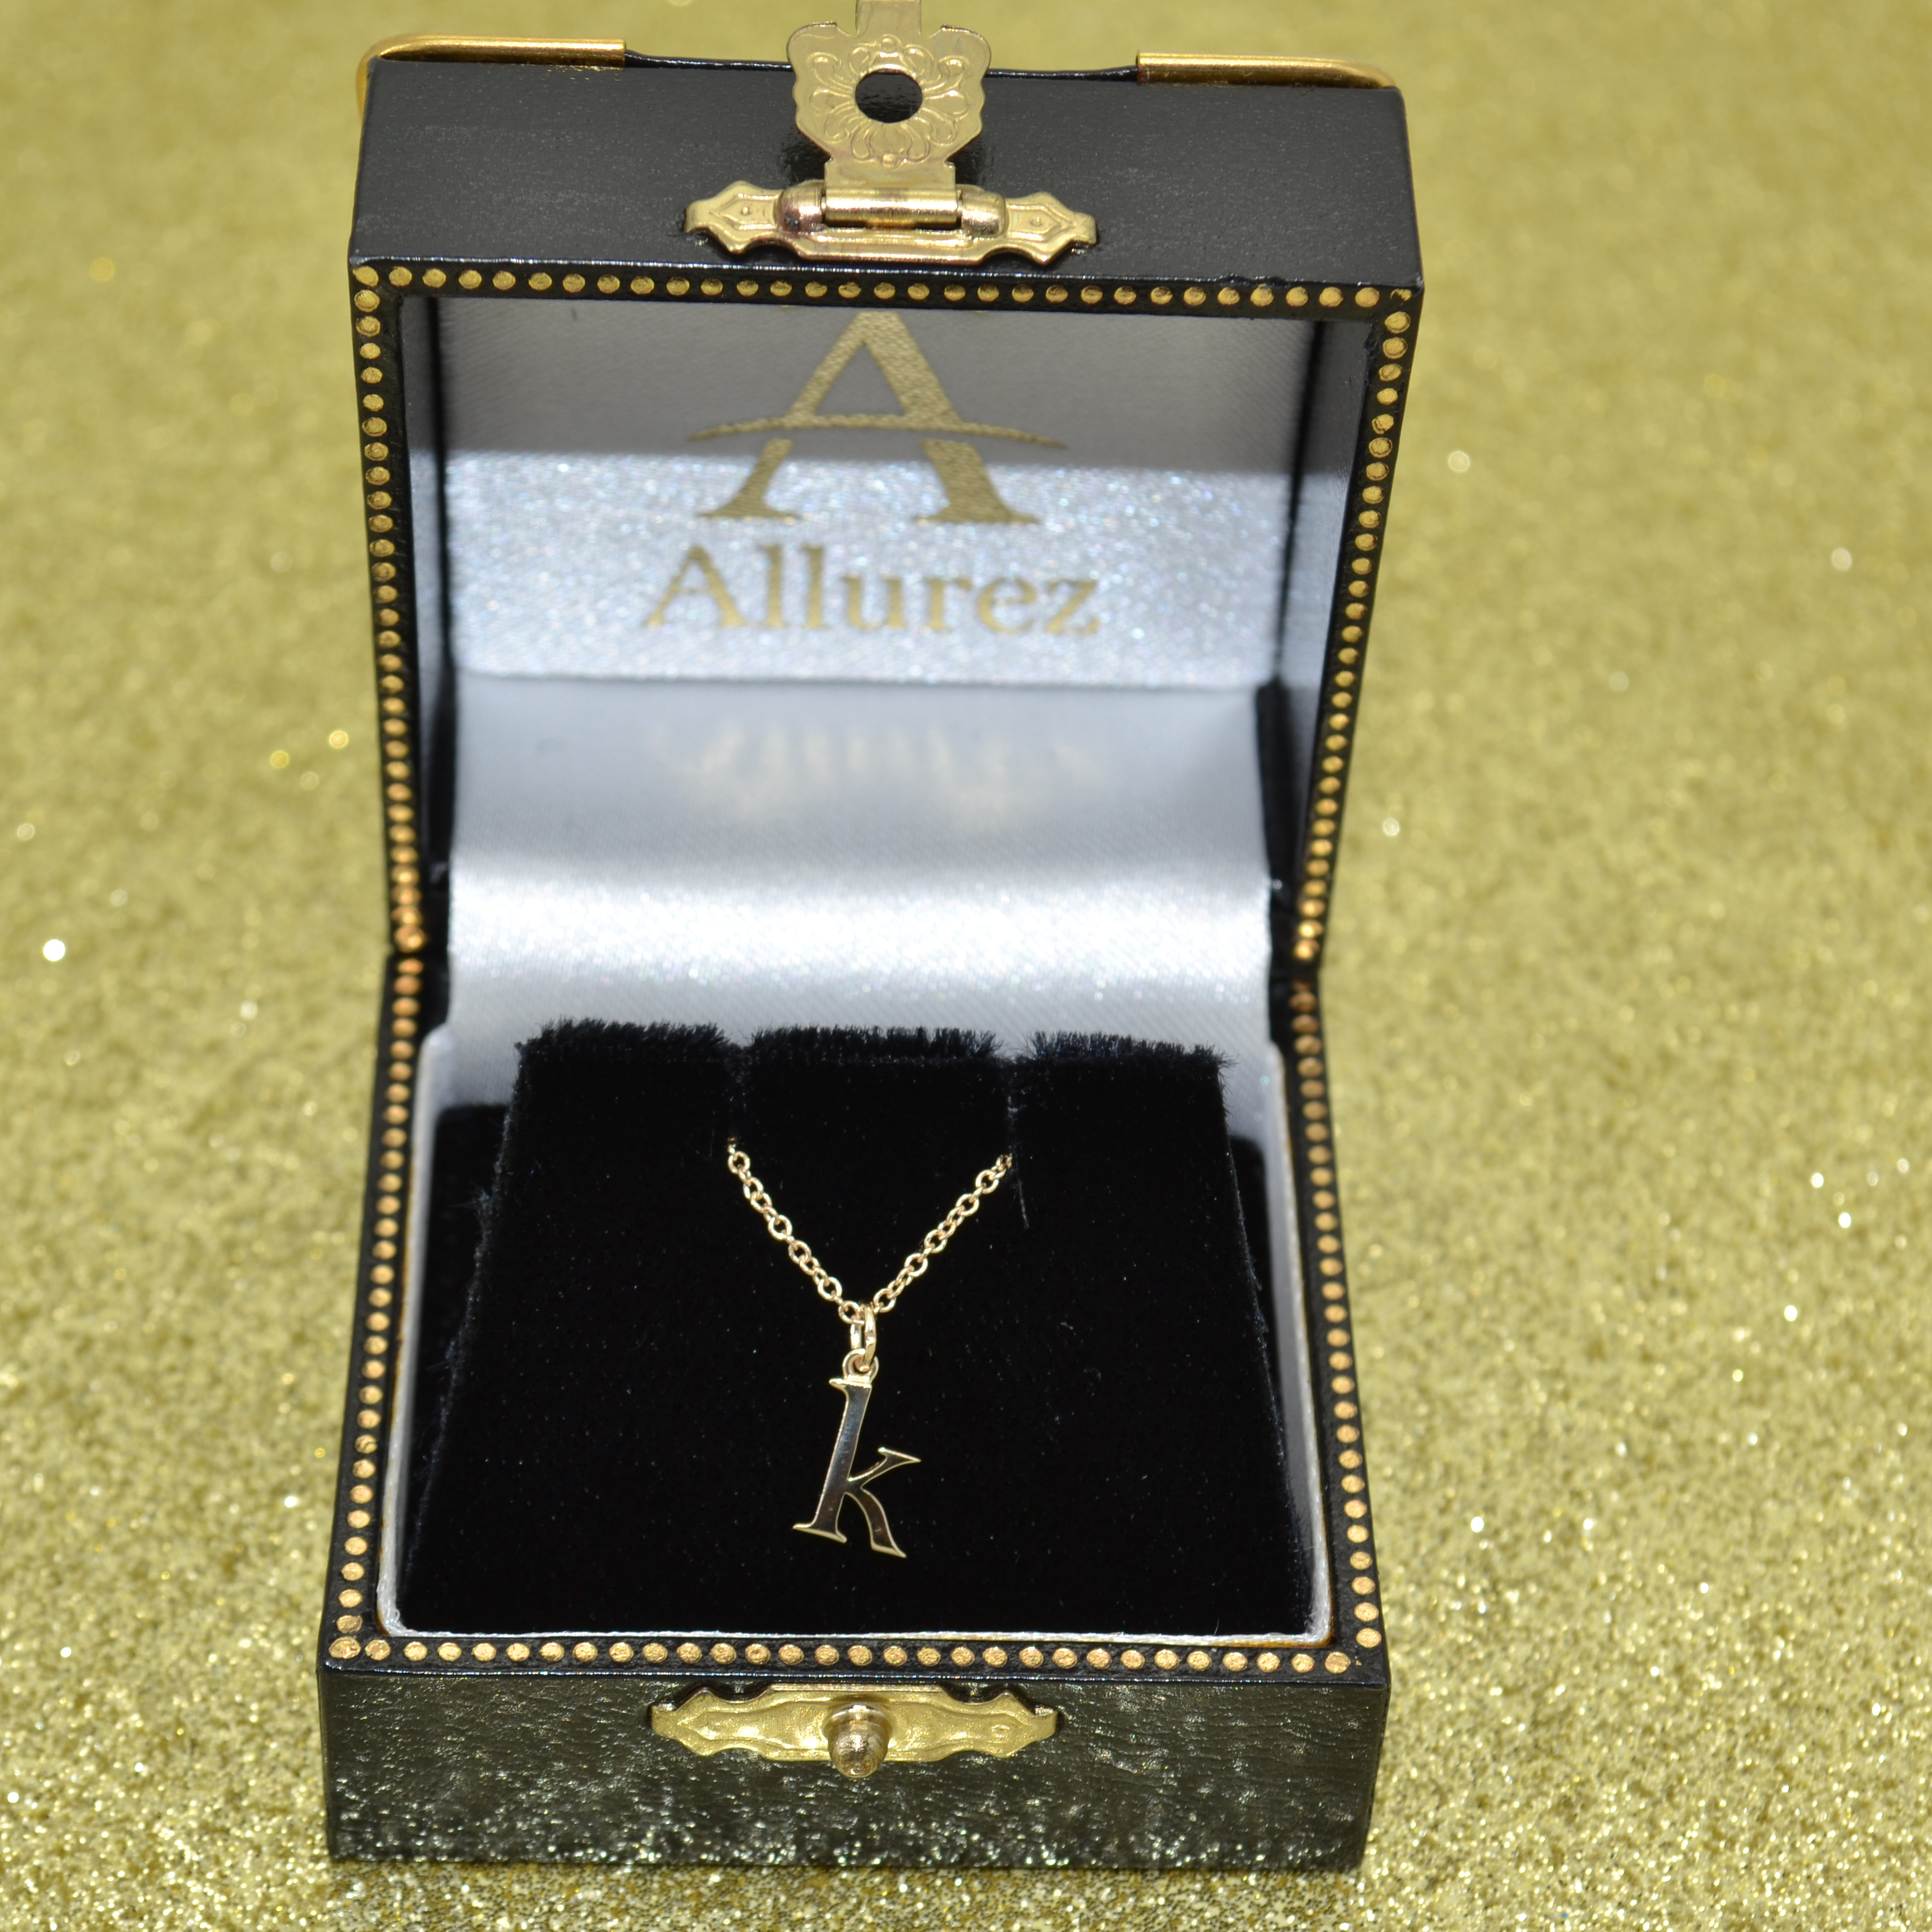 Lower-Case Block Letter Single Initial Pendant Necklace 14k Yellow Gold